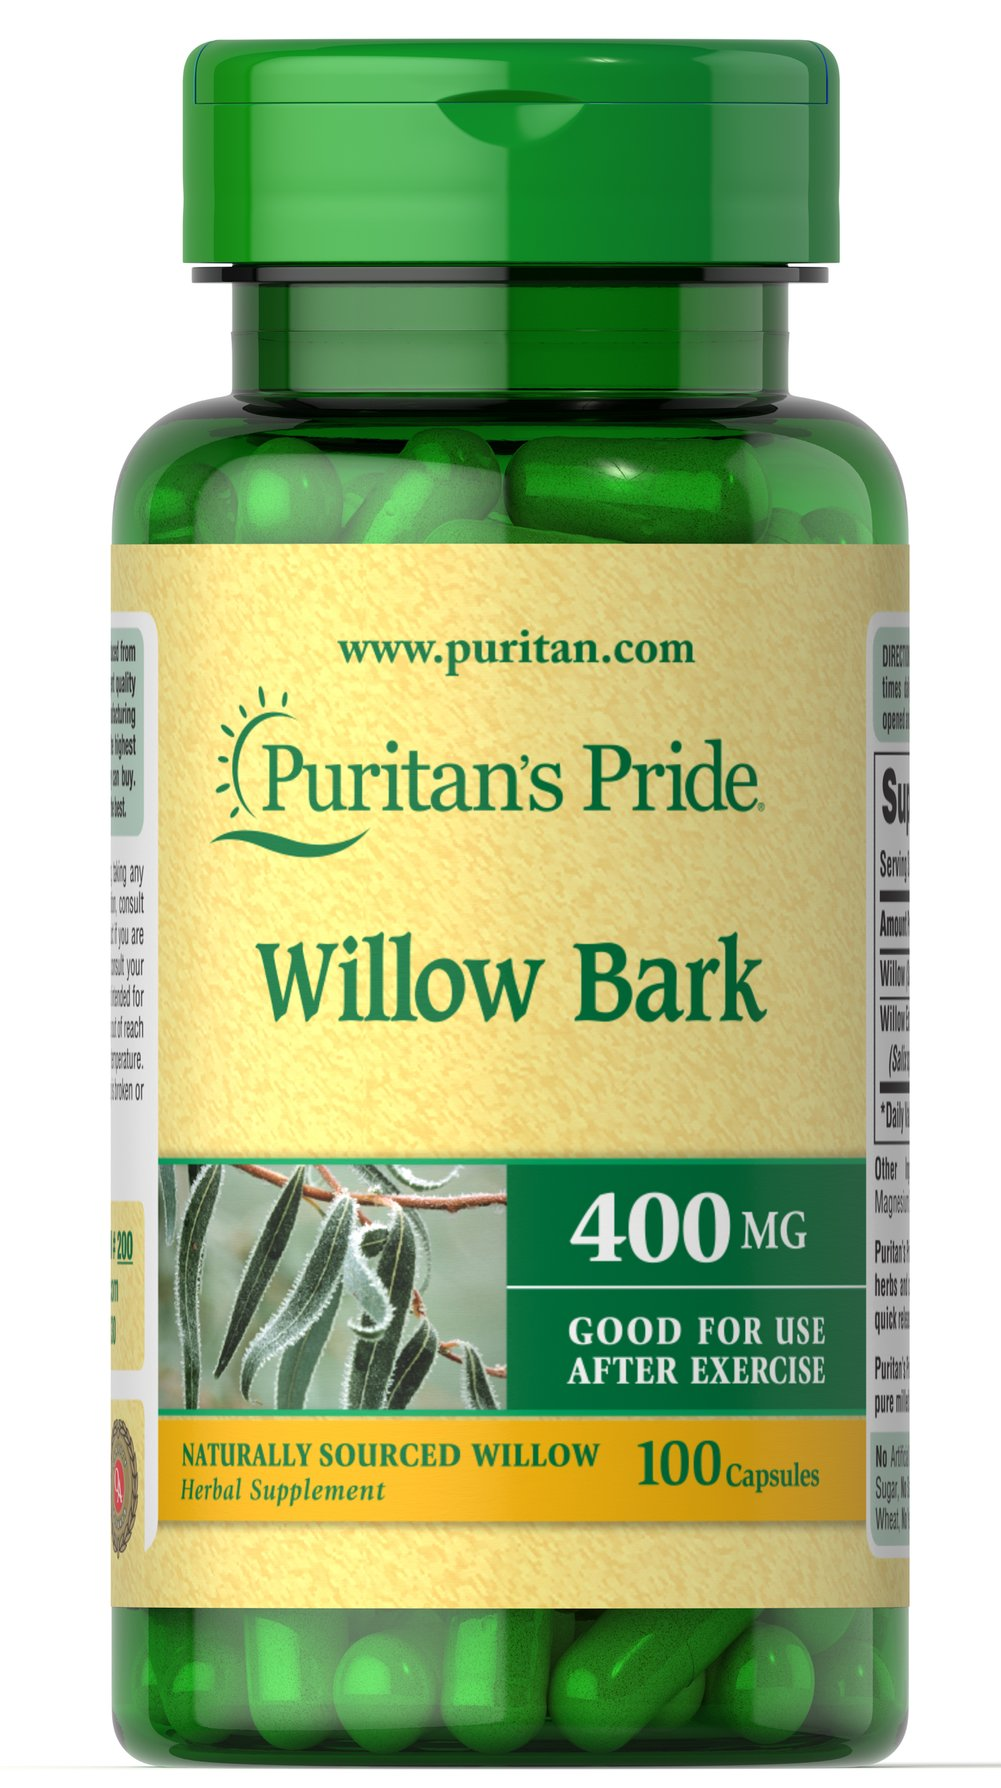 White Willow Bark 400 mg  100 Capsules 400 mg $9.99